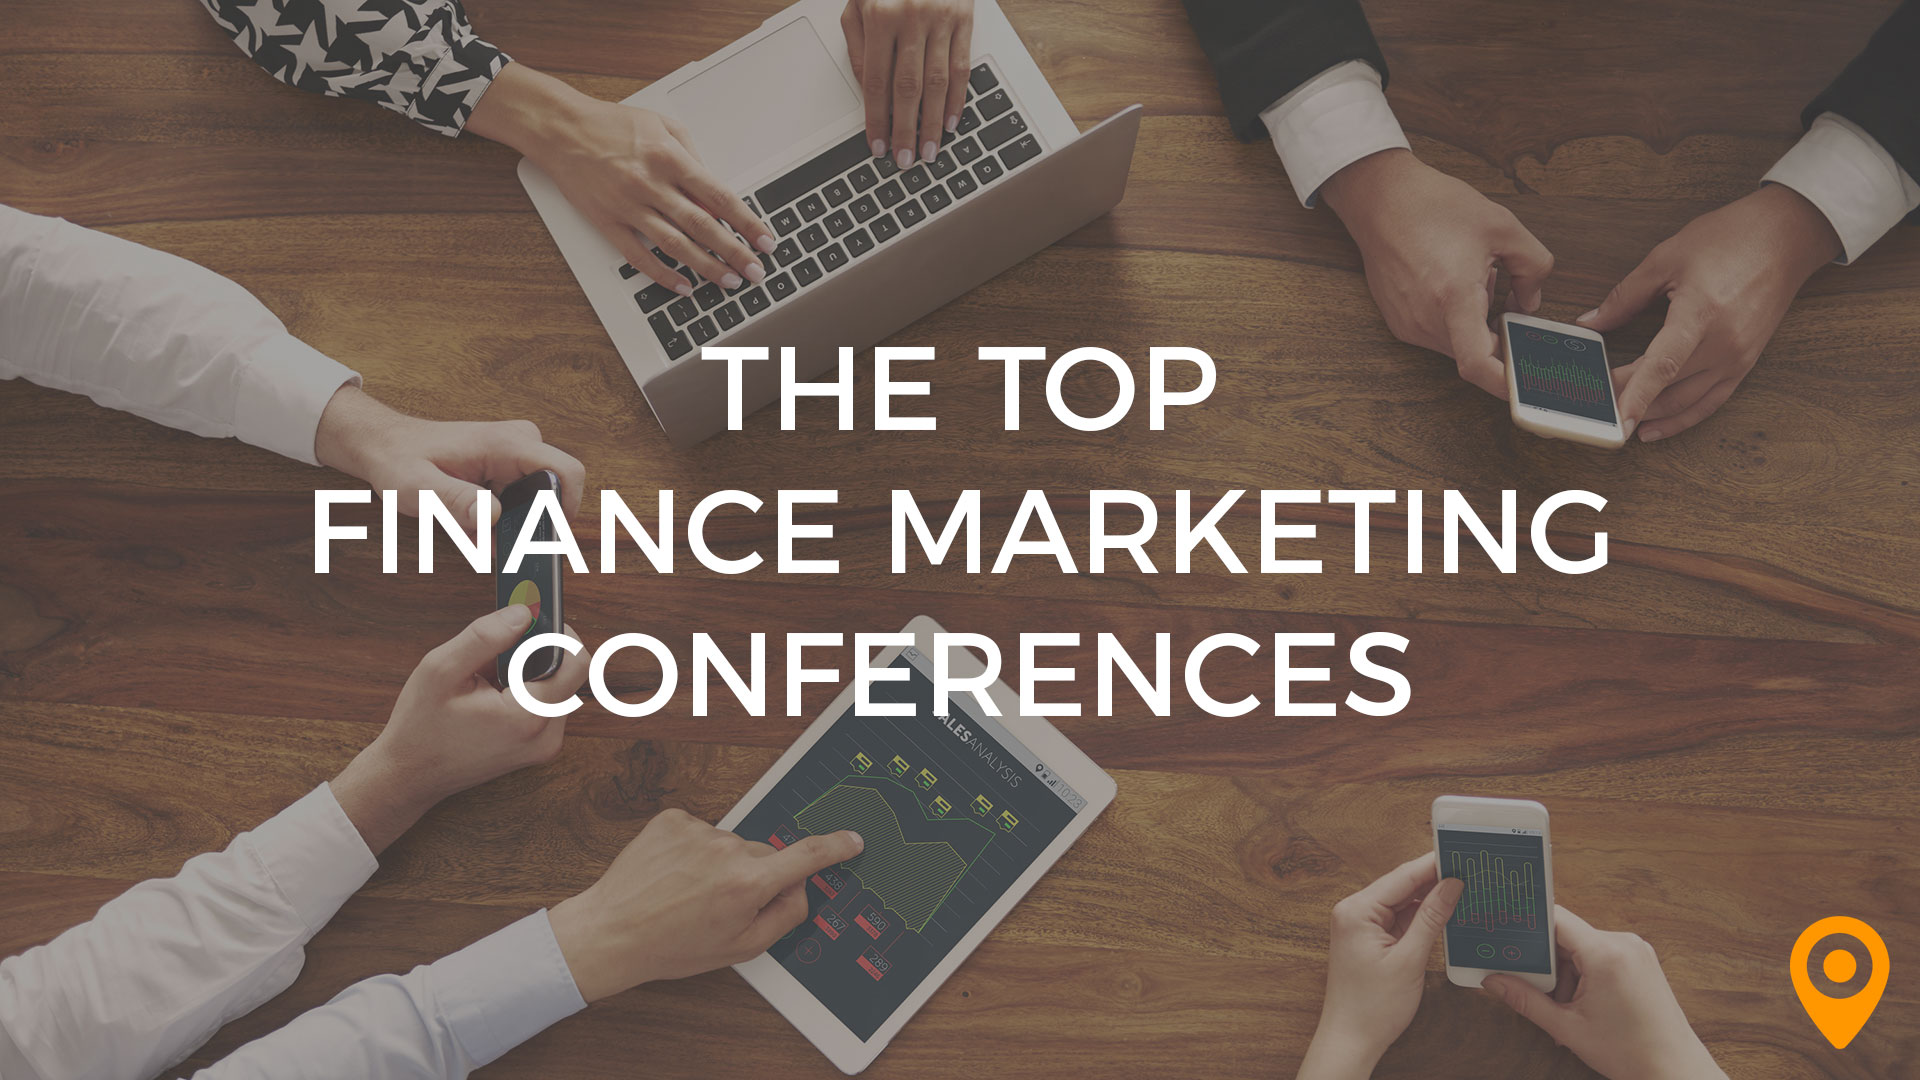 Top Finance Marketing Conferences